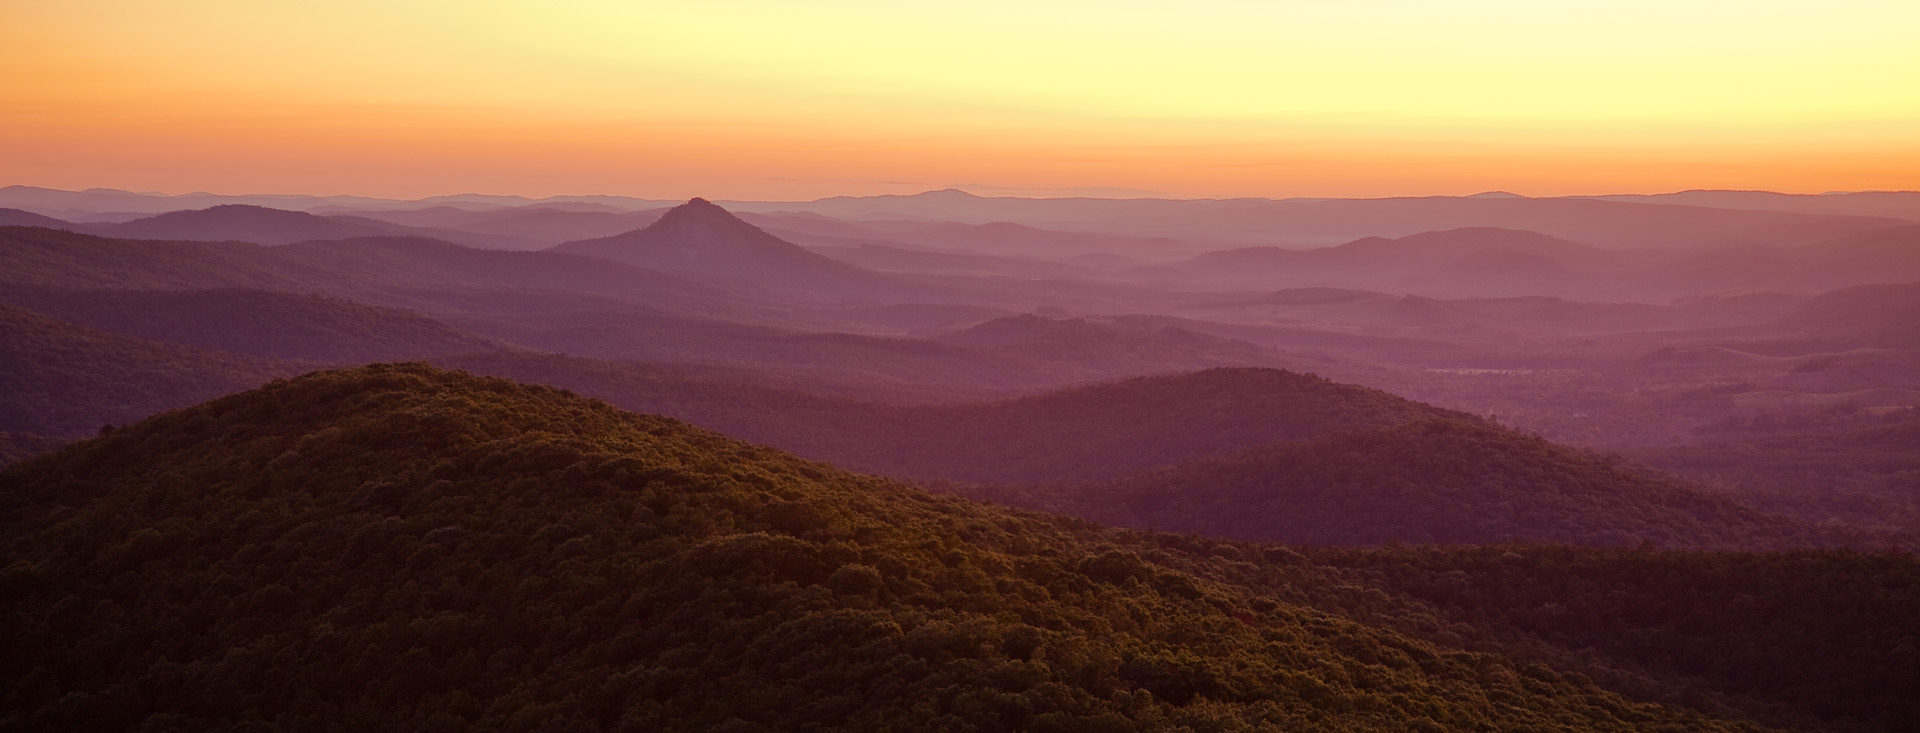 Looking west from Flatside Pinnacle, Ouachita National Forest